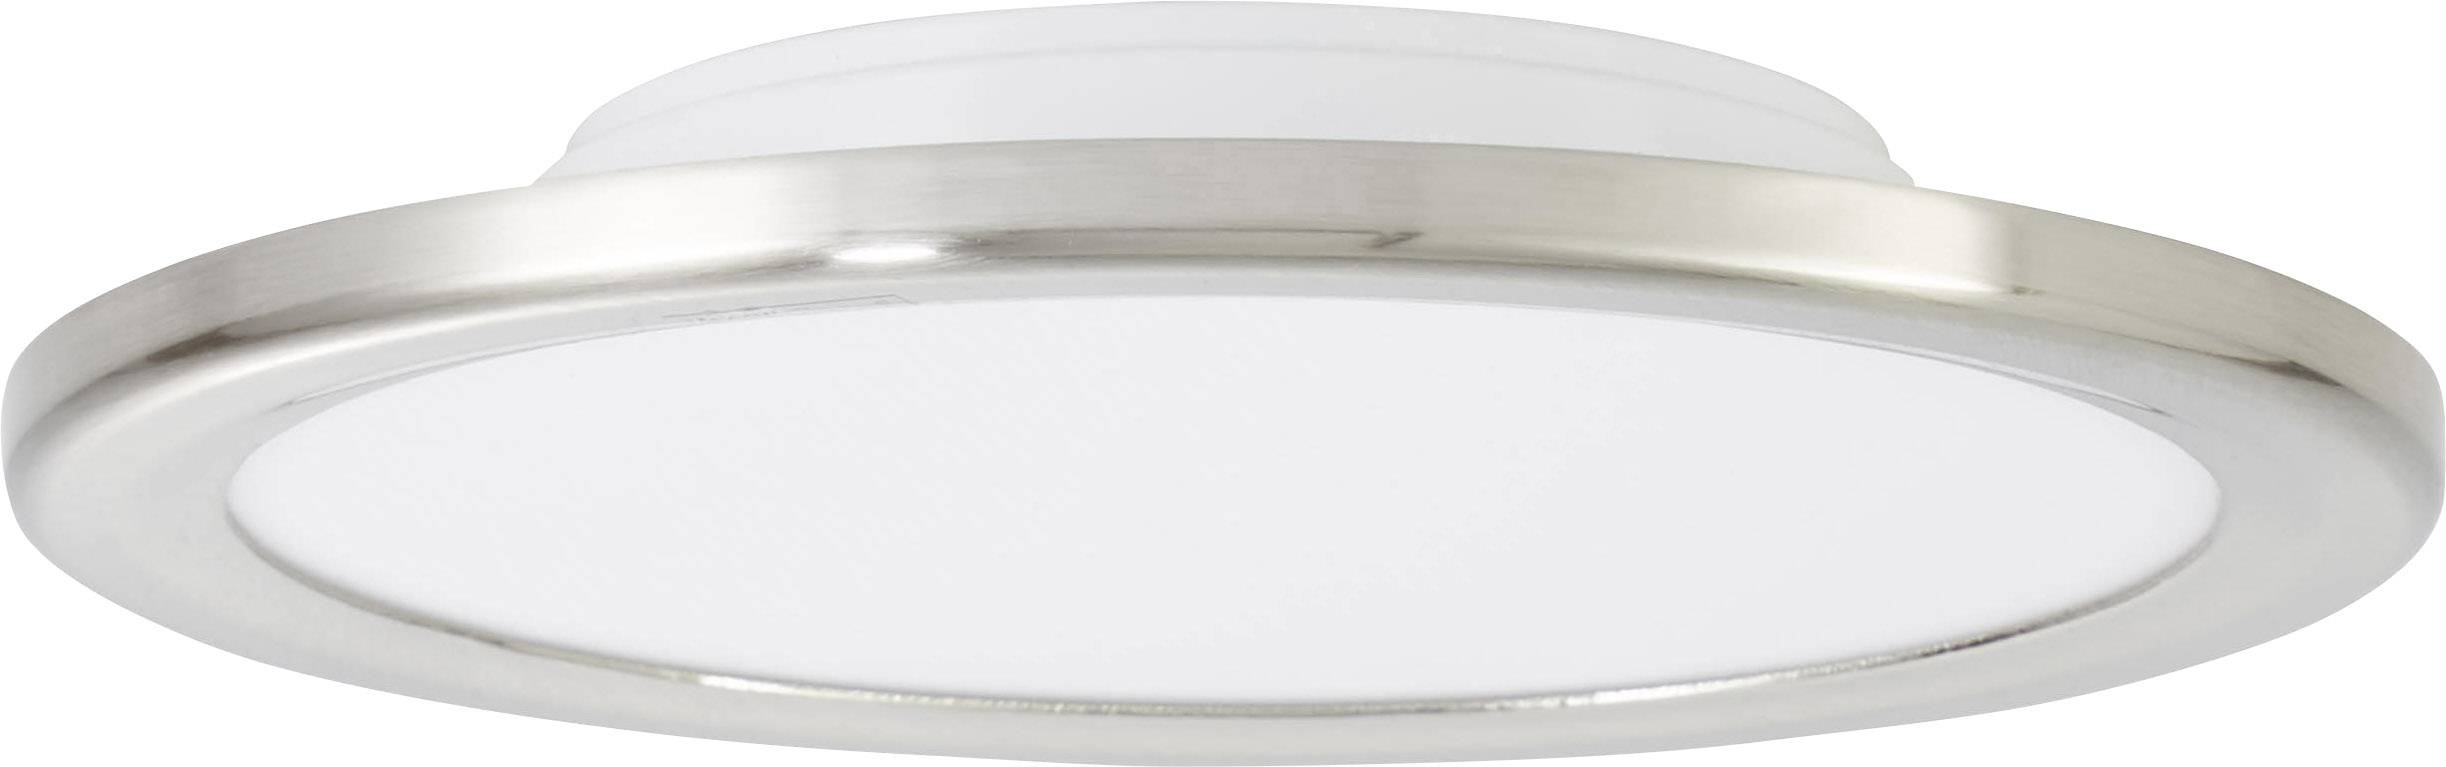 Bad Deckenleuchte Led Brilliant Led Bad Deckenleuchte Eek Led A E 23w Warm Weiß G94487 13 Neptun Eisen